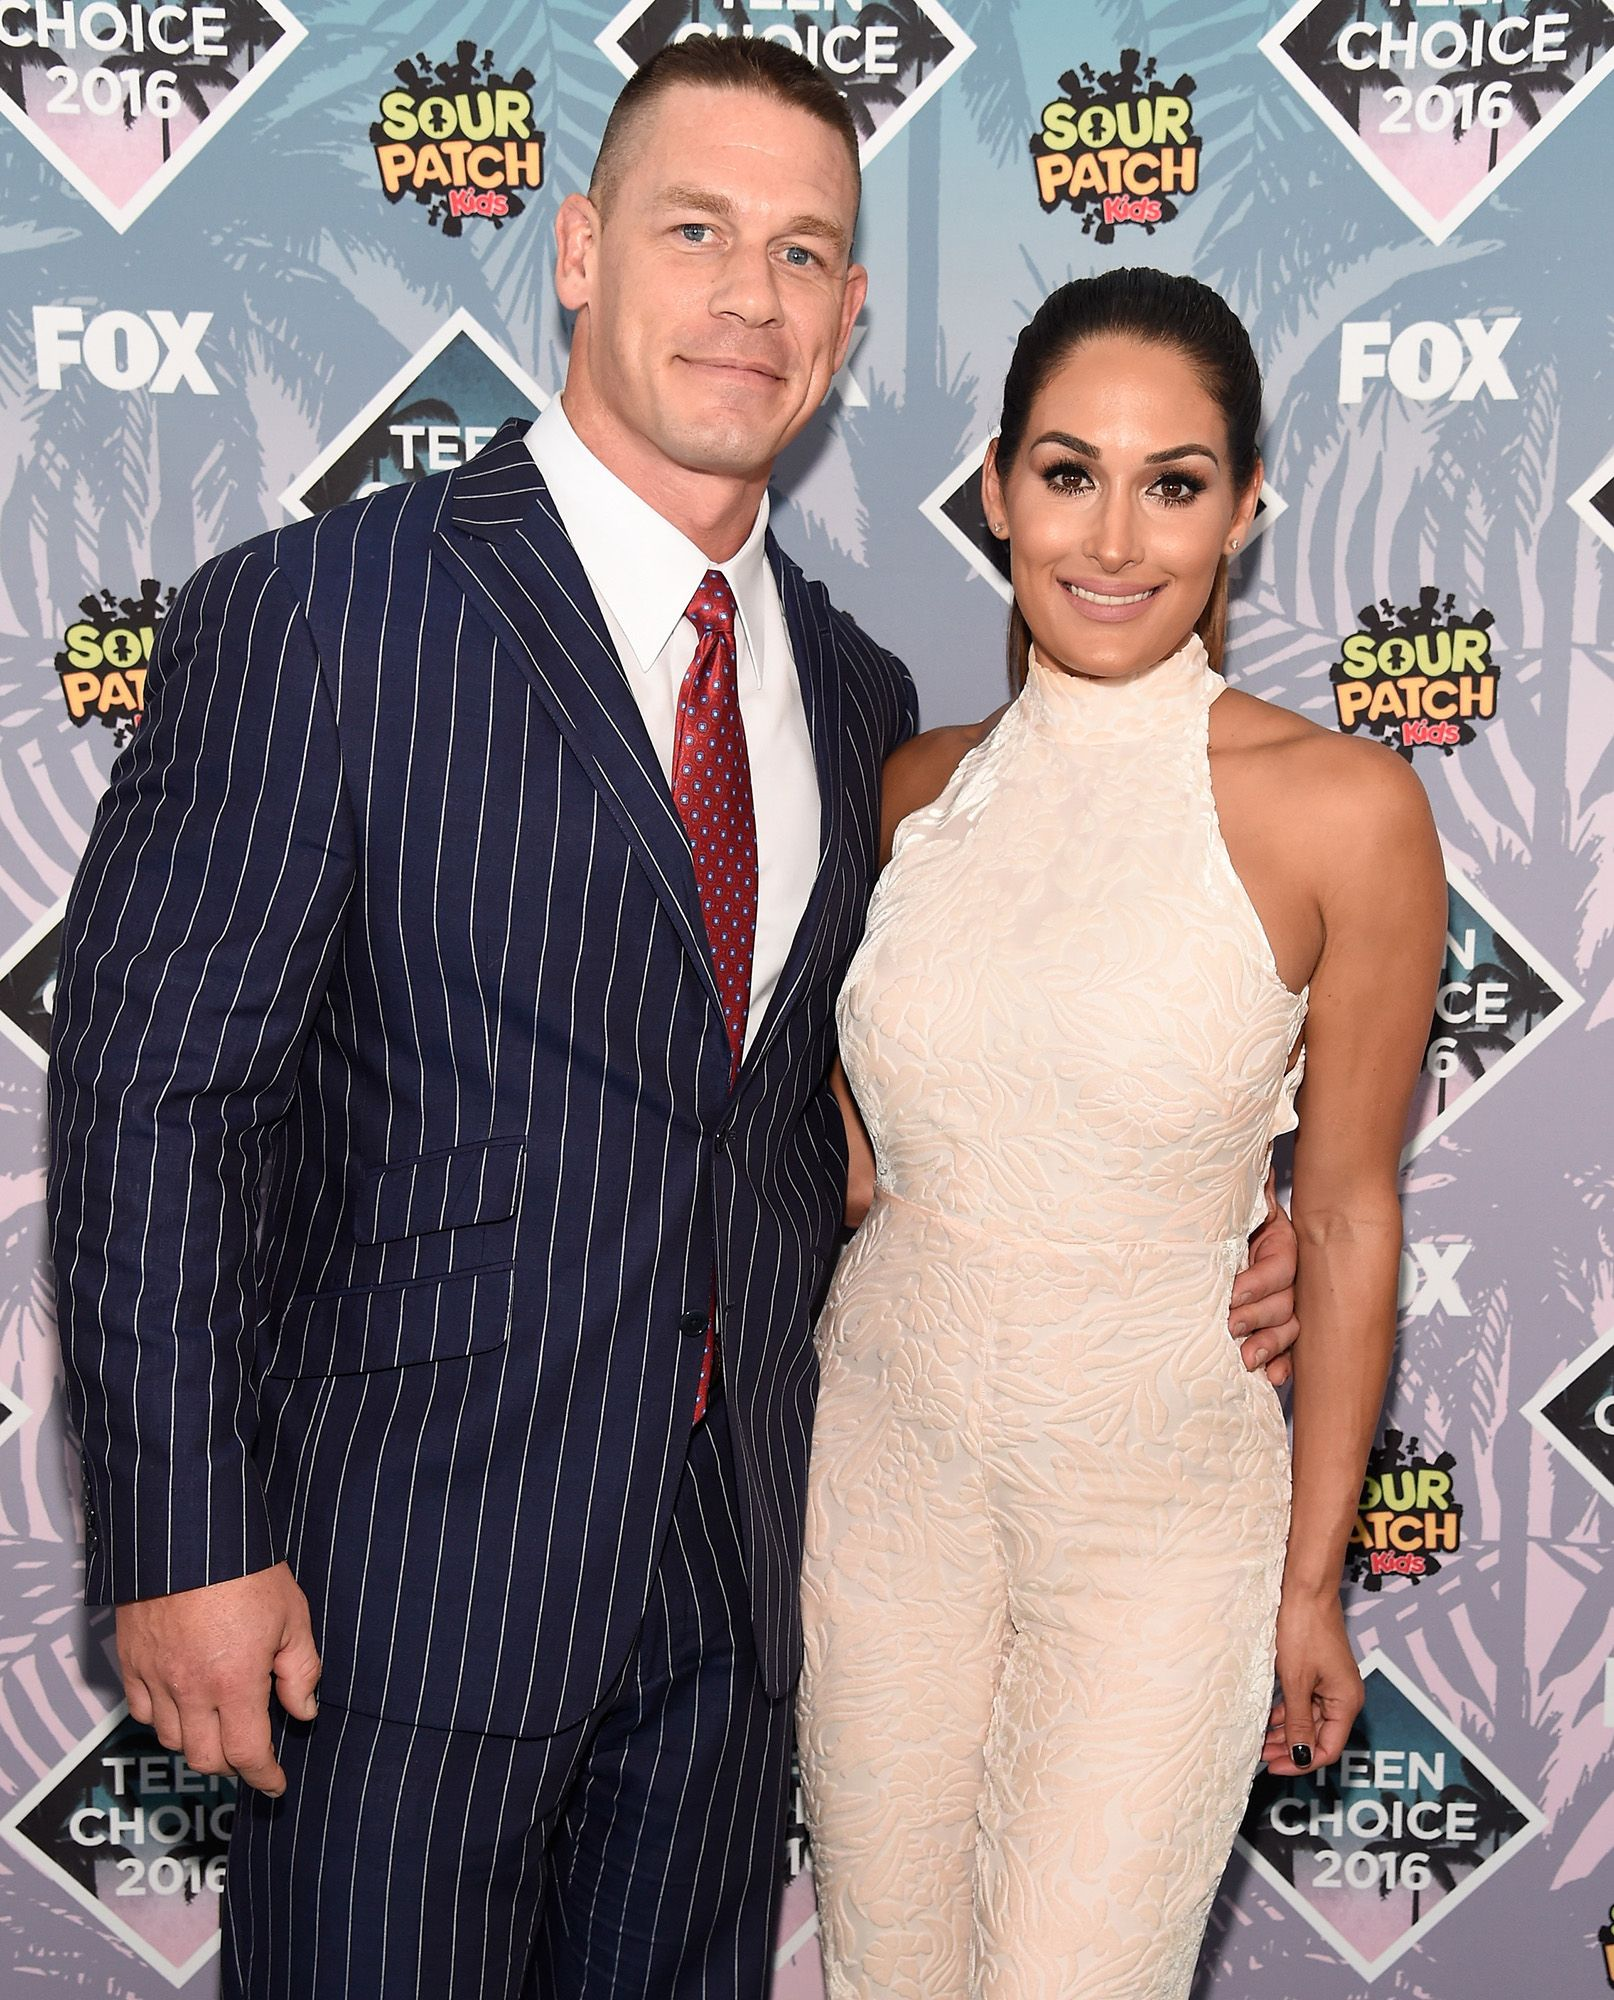 Nikki Bella Amp John Cena Are Basically Back Together Their Commitment Is Stronger Than Ever John Cena And Nikki John Cena Nikki Bella Nikki Bella